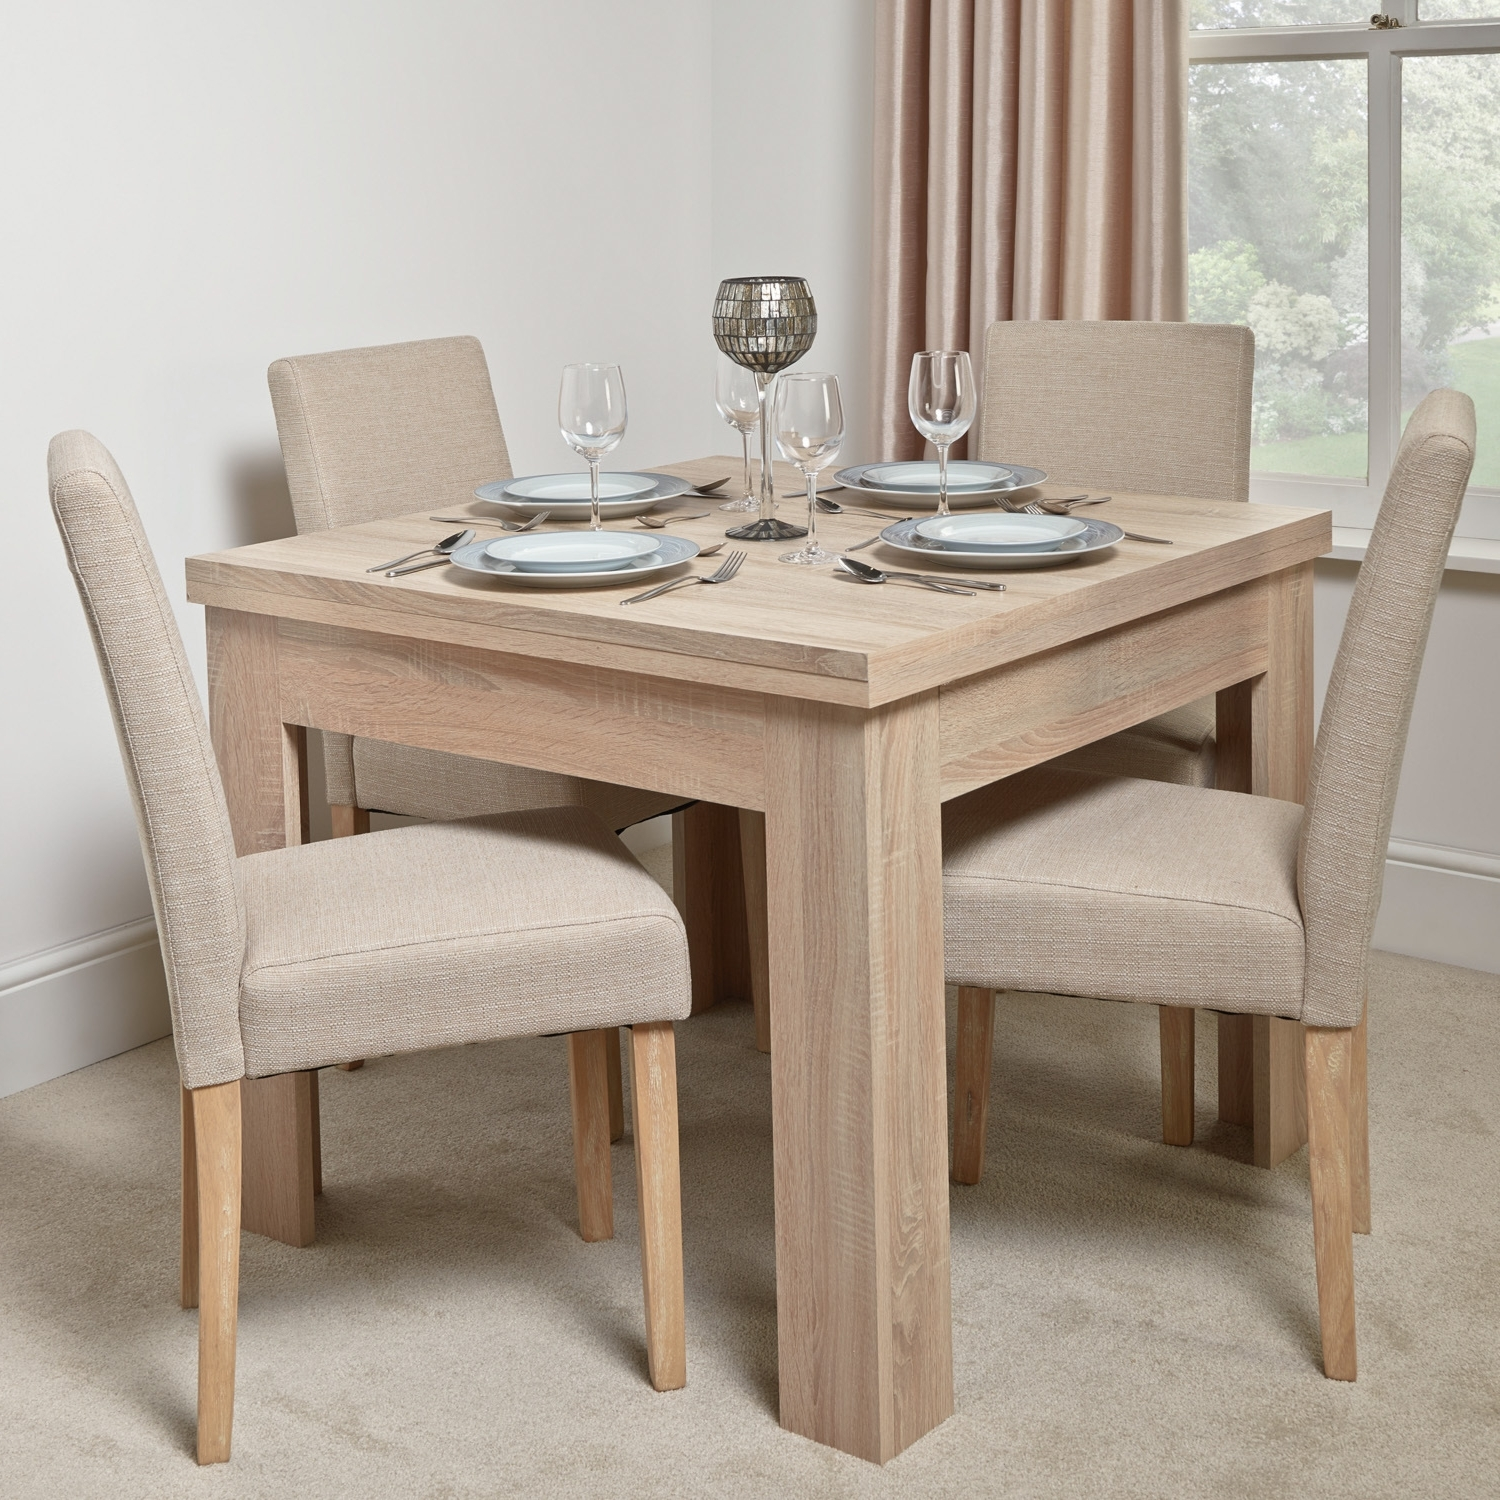 Extending Dining Tables And Chairs With Regard To Fashionable Calpe Flip Extending Dining Table (View 2 of 25)